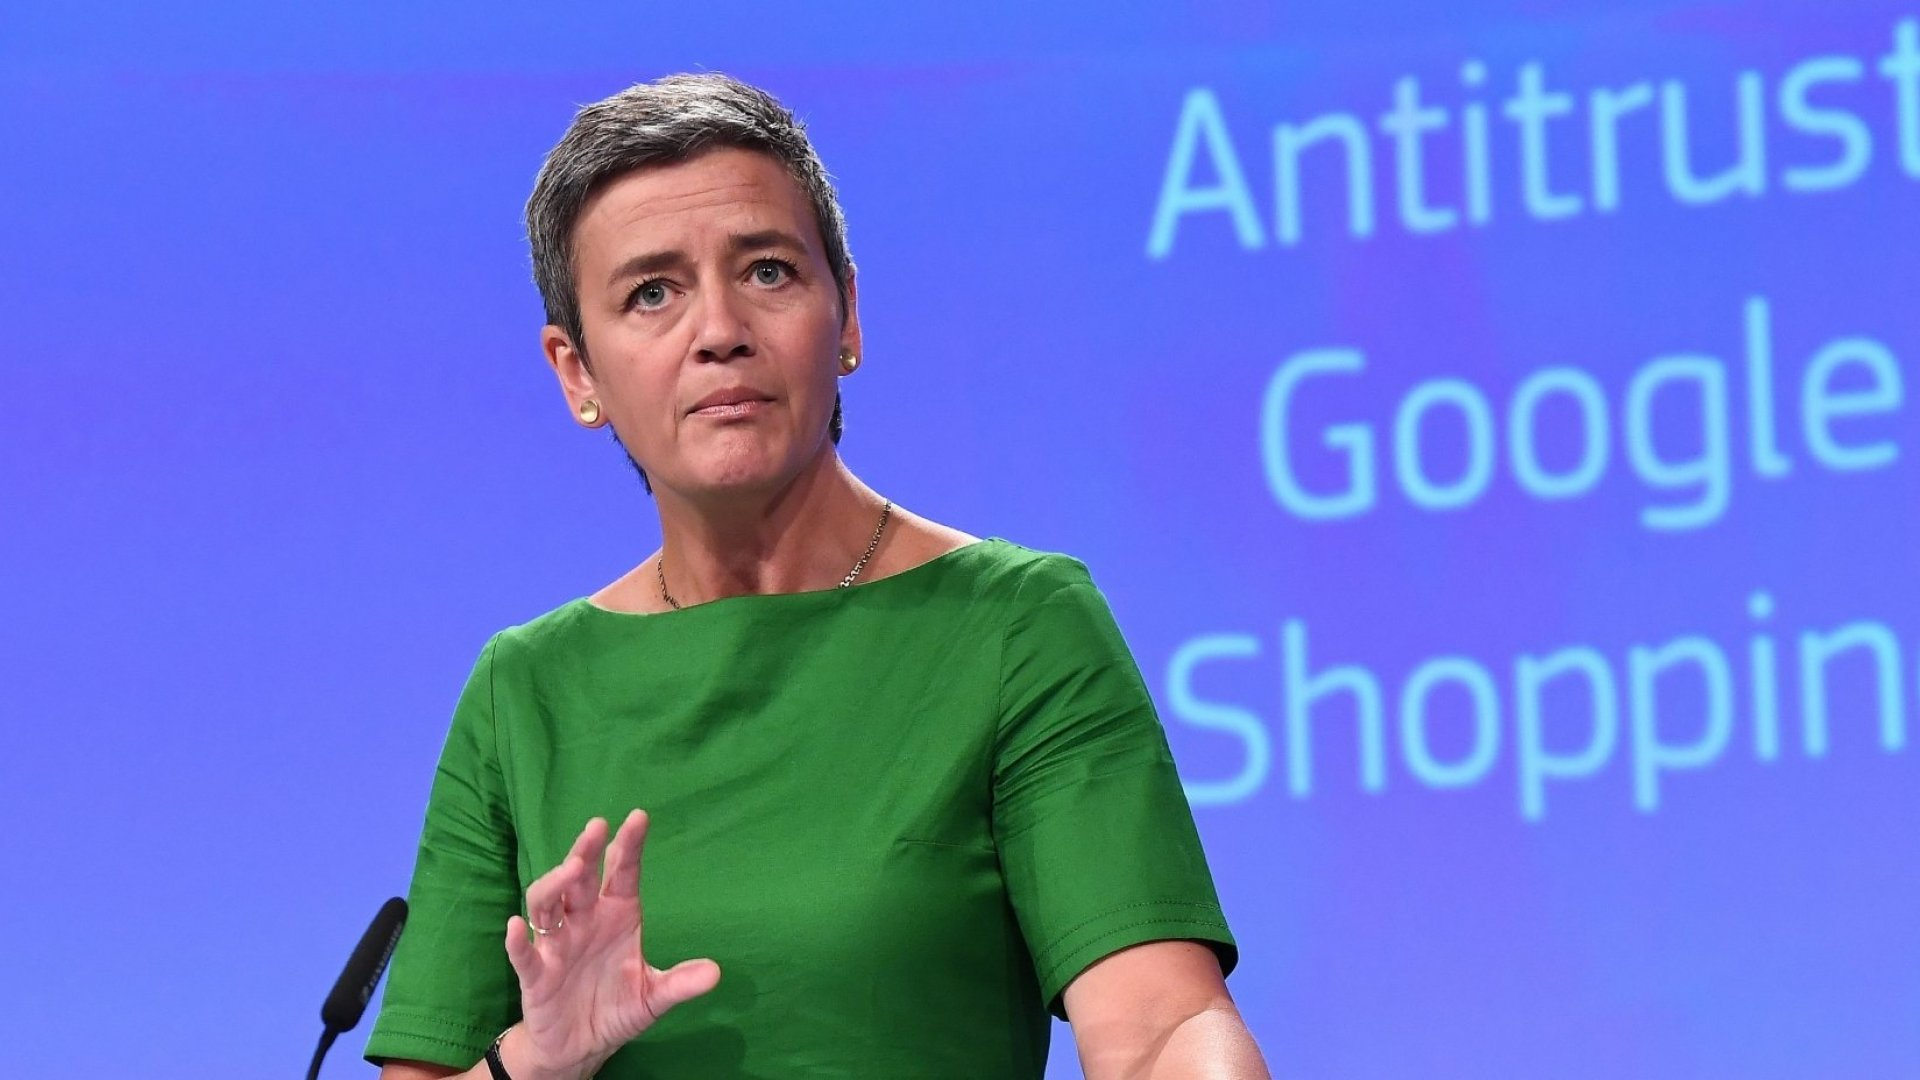 European Commissioner for Competition Margrethe Vestager addresses a press conference on an antitrust case against US search engine Google at the European Commission in Brussels, on June 27, 2017.